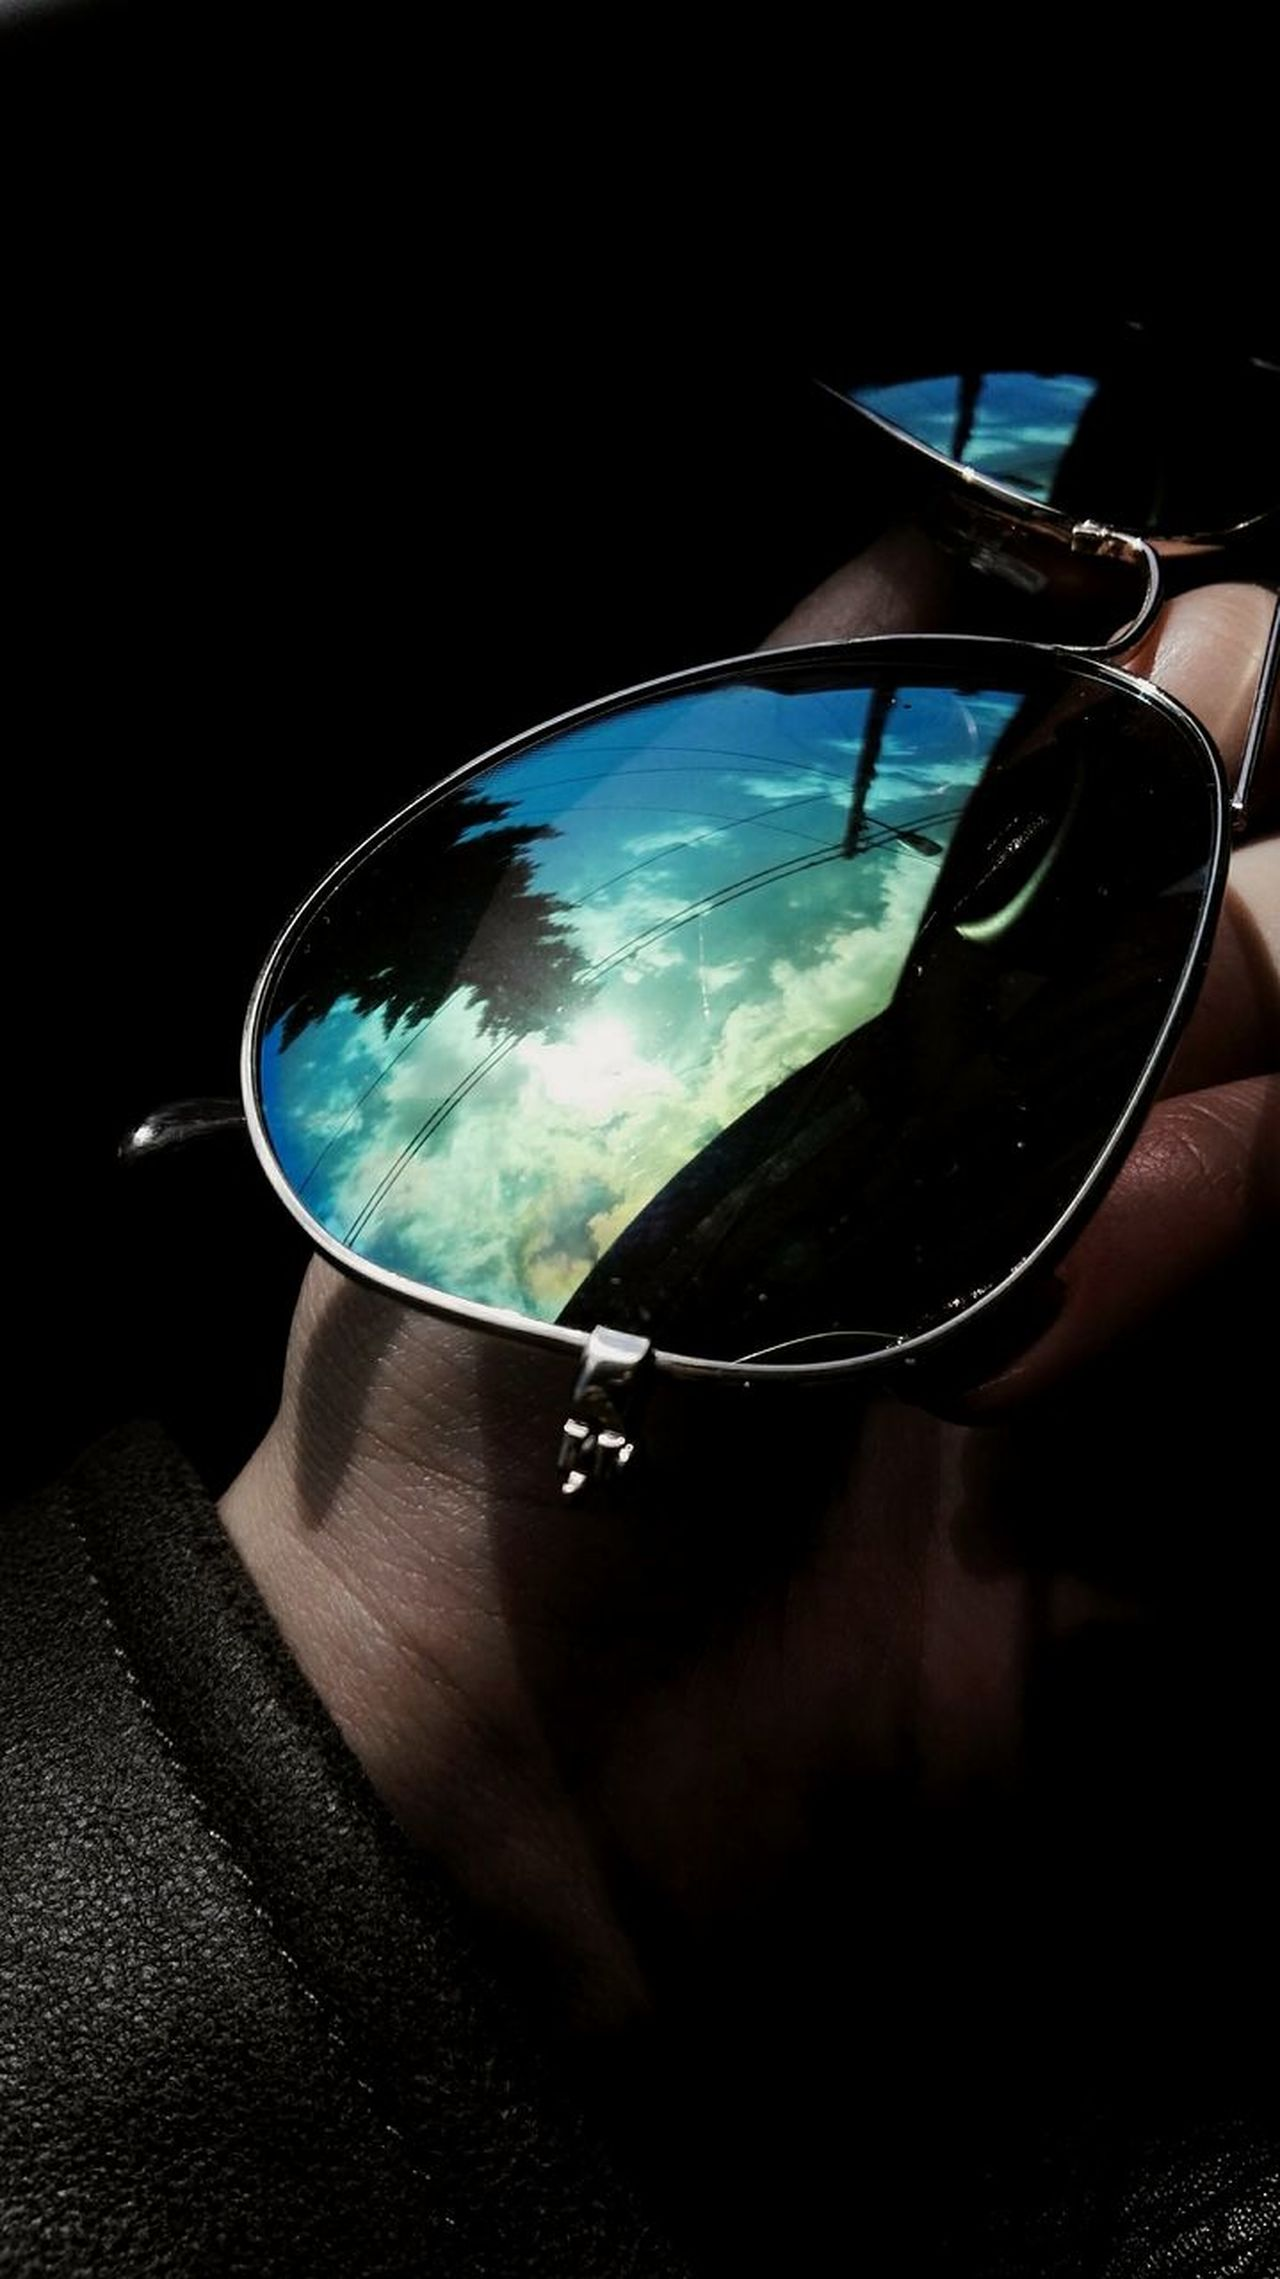 Reflection Glasses Glass Reflection Photography Black Background Close-up Shadow Contrast Colors Colorsplash Hand Human Body Part Human Hand Body Part No People Blue Sky Sky And Clouds Cloud - Sky Clouds And Sky Nature Tree Reflections And Shadows High Contrast Green Color